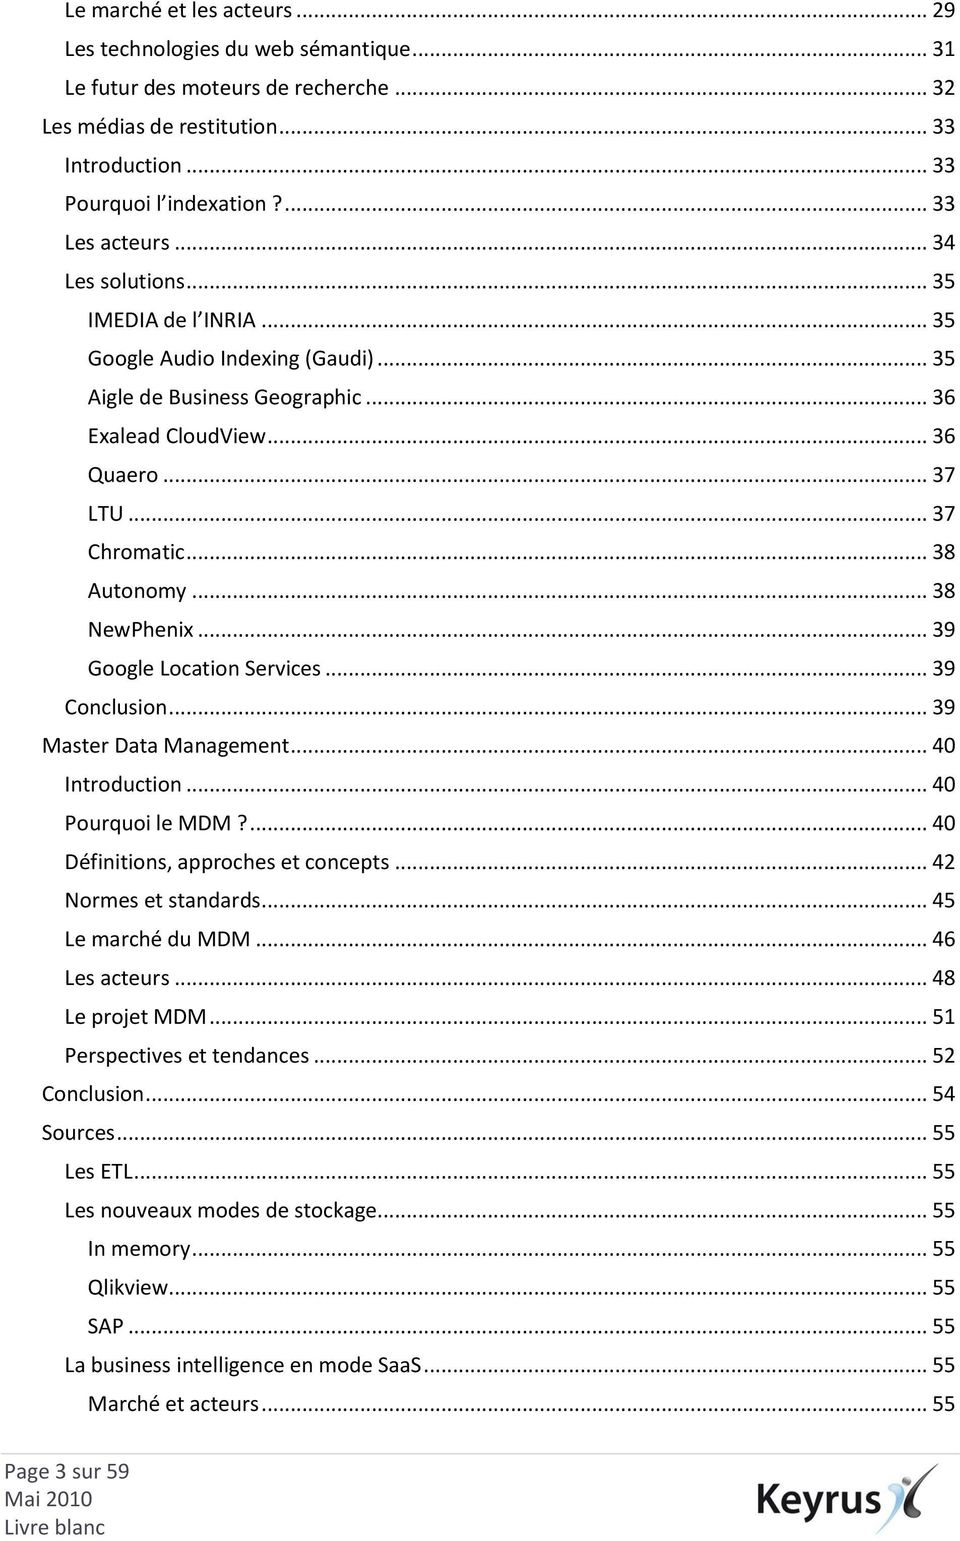 .. 38 Autonomy... 38 NewPhenix... 39 Google Location Services... 39 Conclusion... 39 Master Data Management... 40 Introduction... 40 Pourquoi le MDM?... 40 Définitions, approches et concepts.